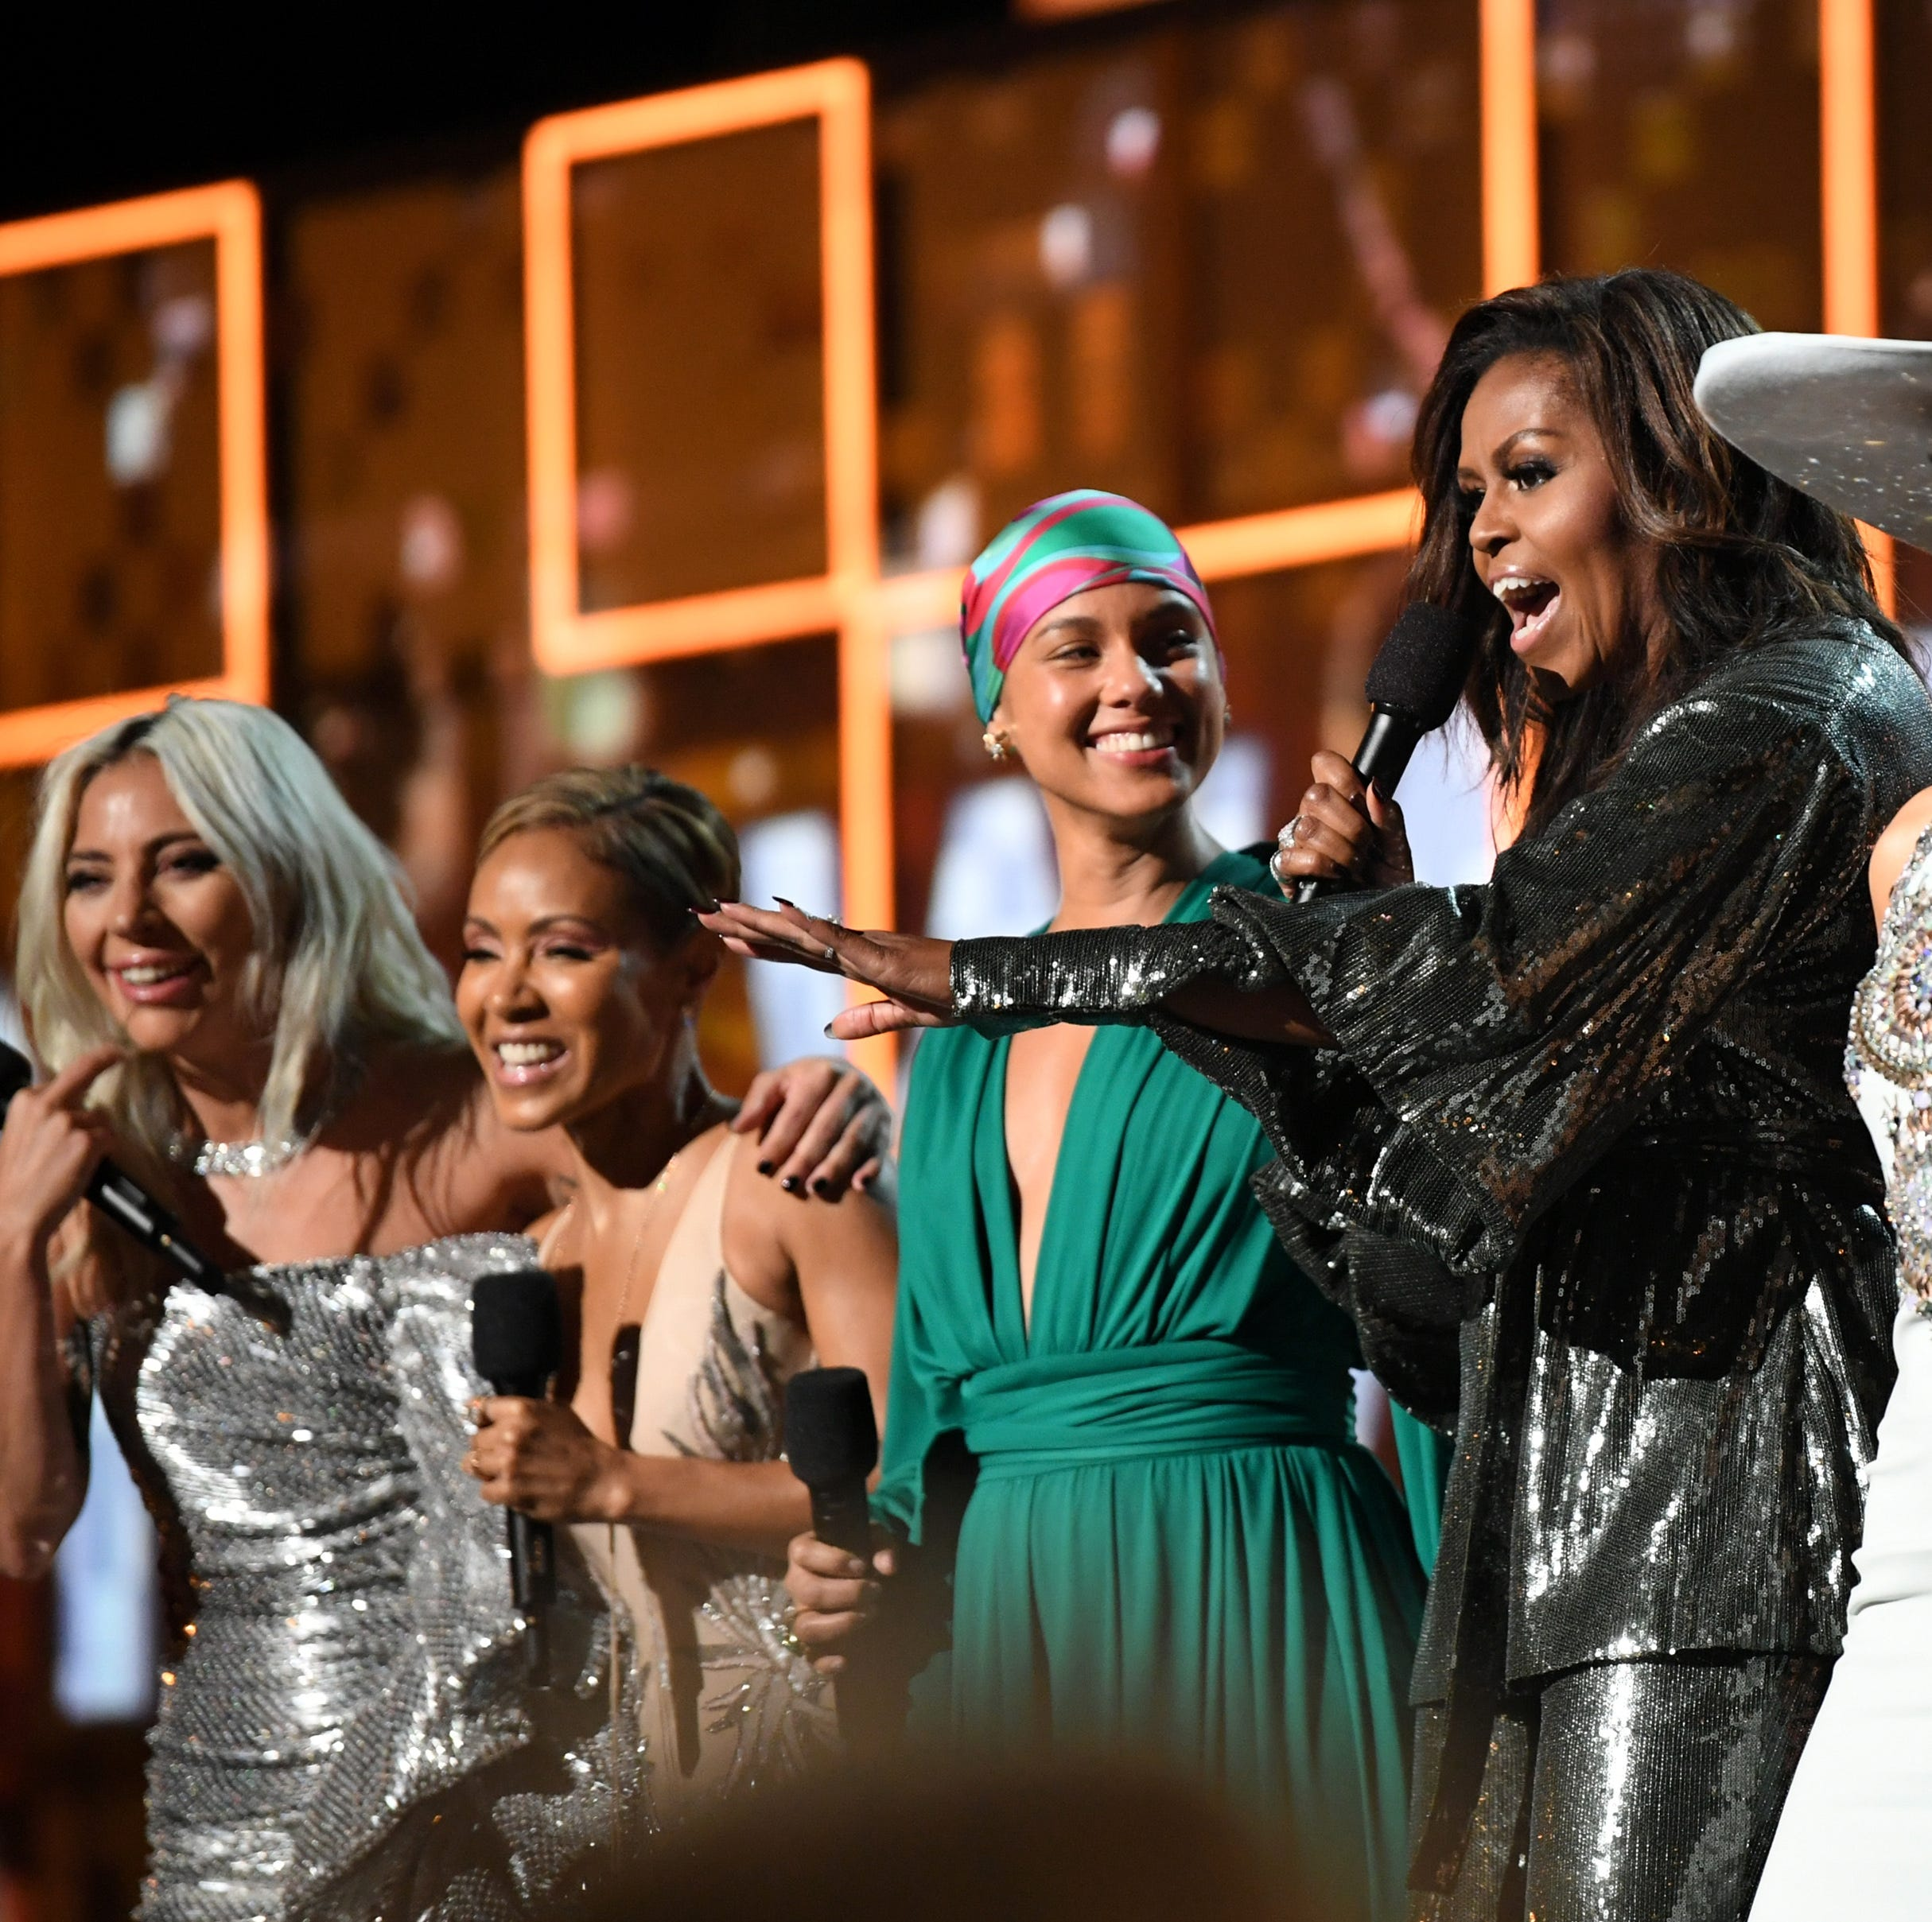 Women dominated the 2019 Grammy Awards